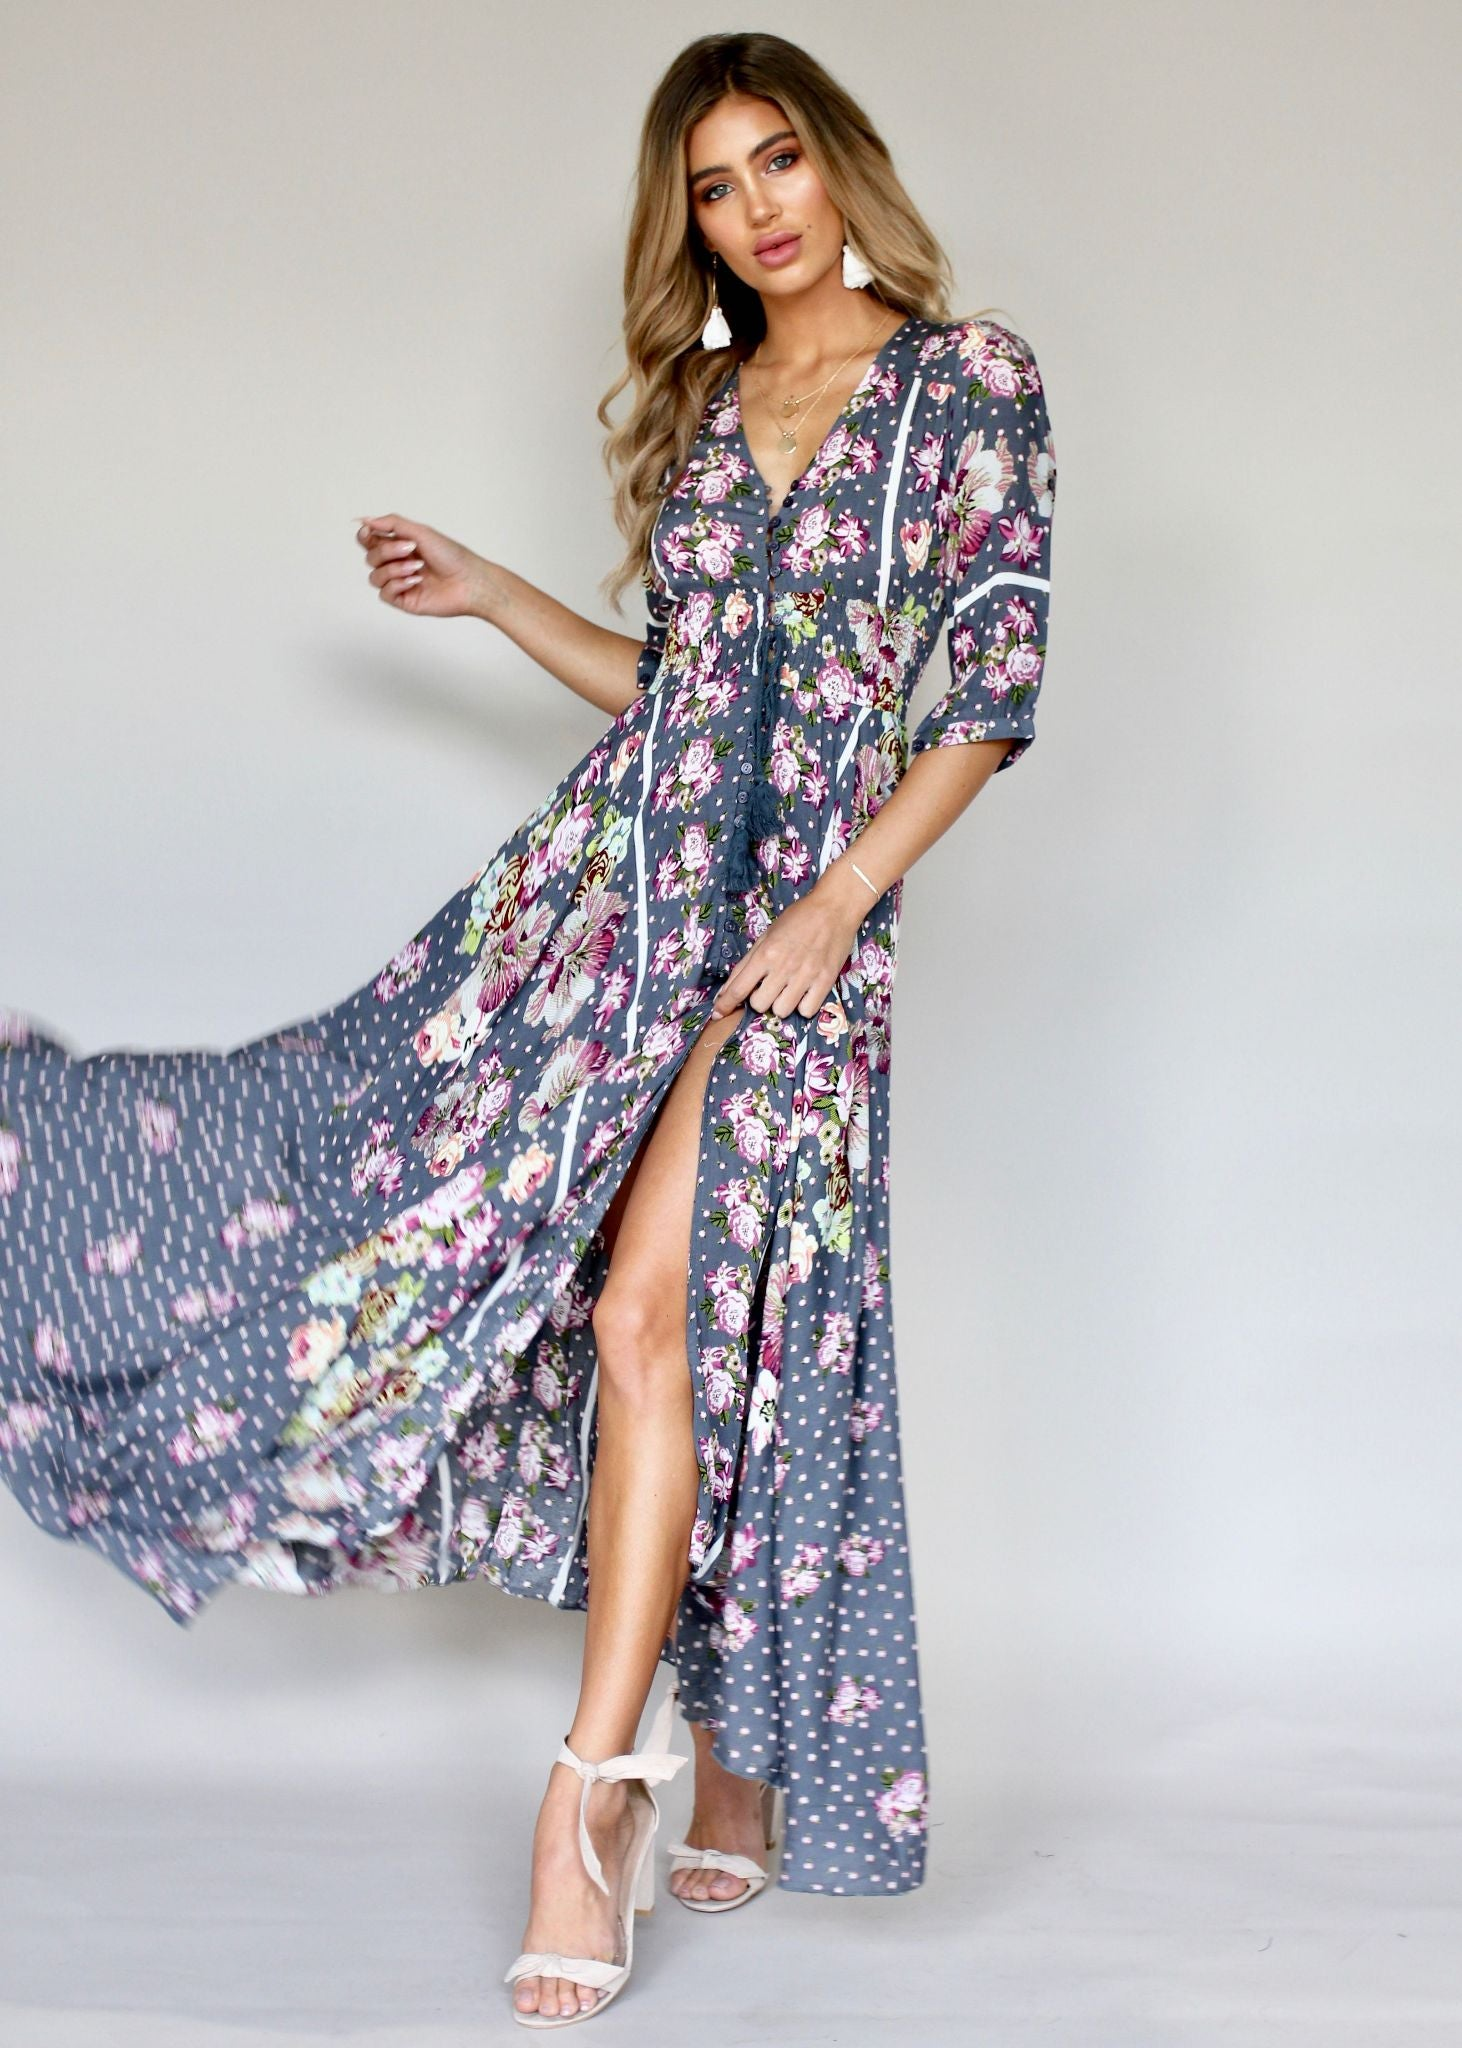 New Romantics Maxi - In The Valley